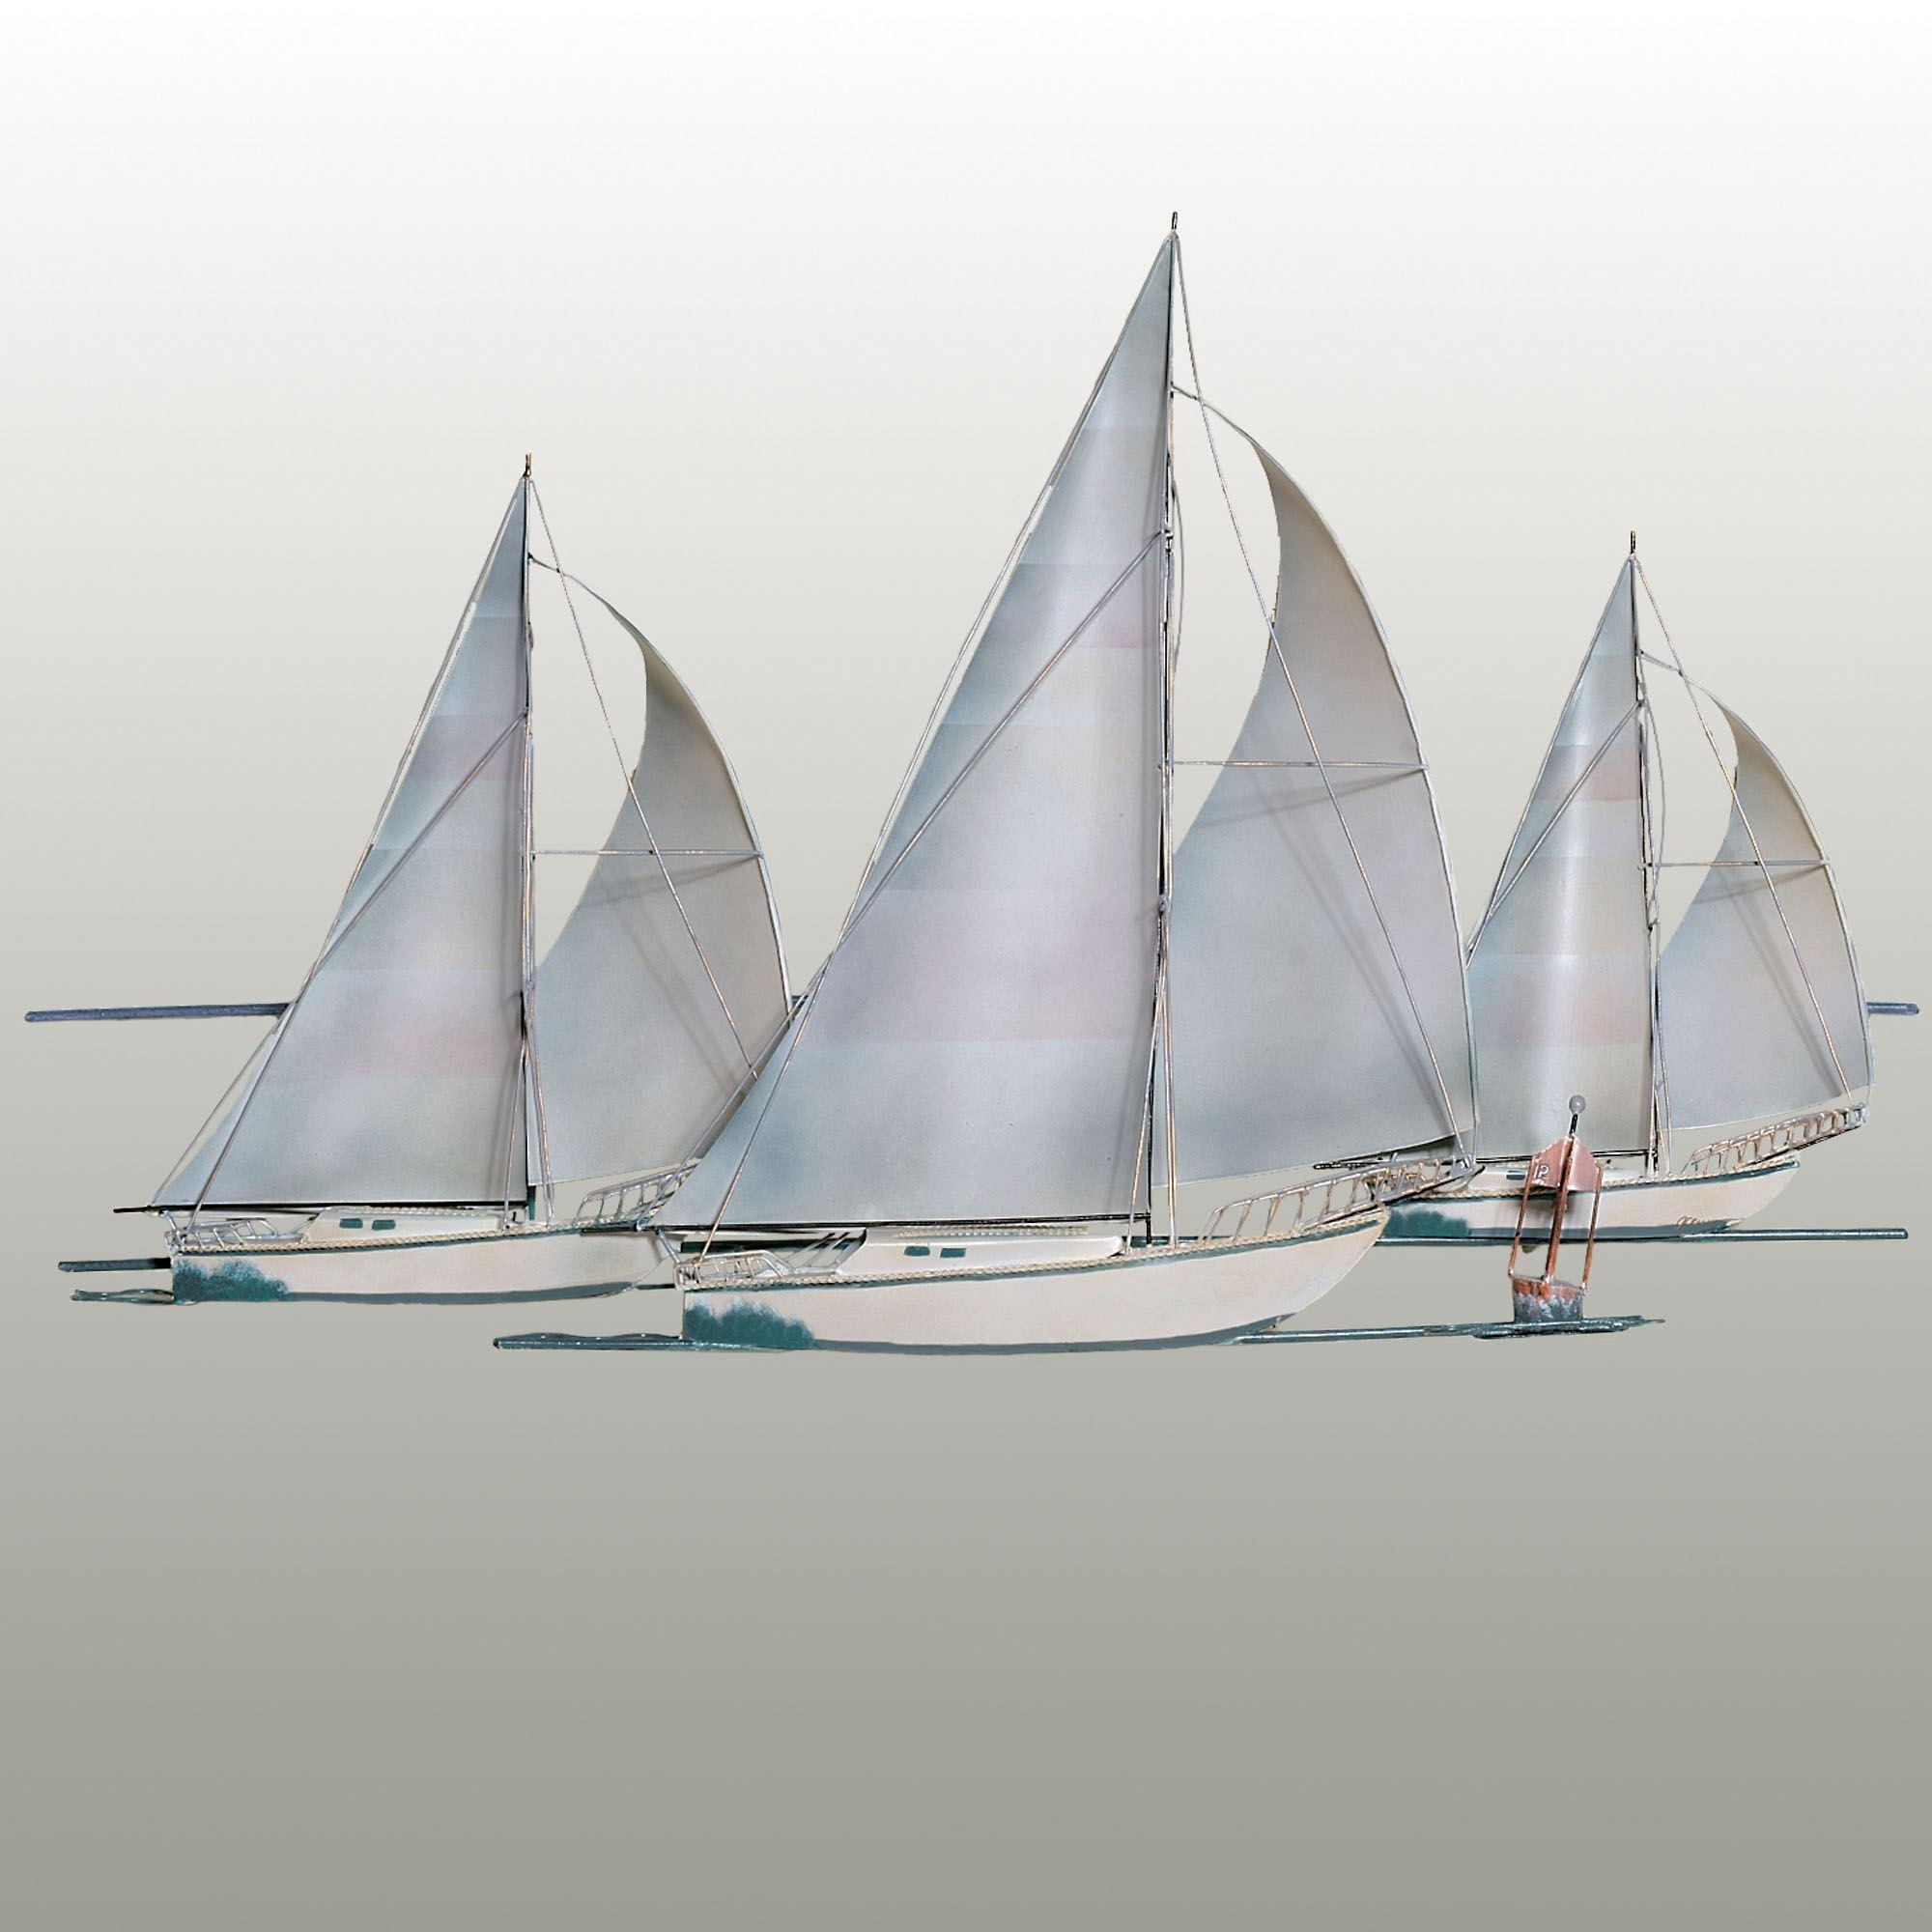 Metal Wall Art Sculptures | Touch Of Class Pertaining To Sailboat Metal Wall Art (Image 10 of 20)